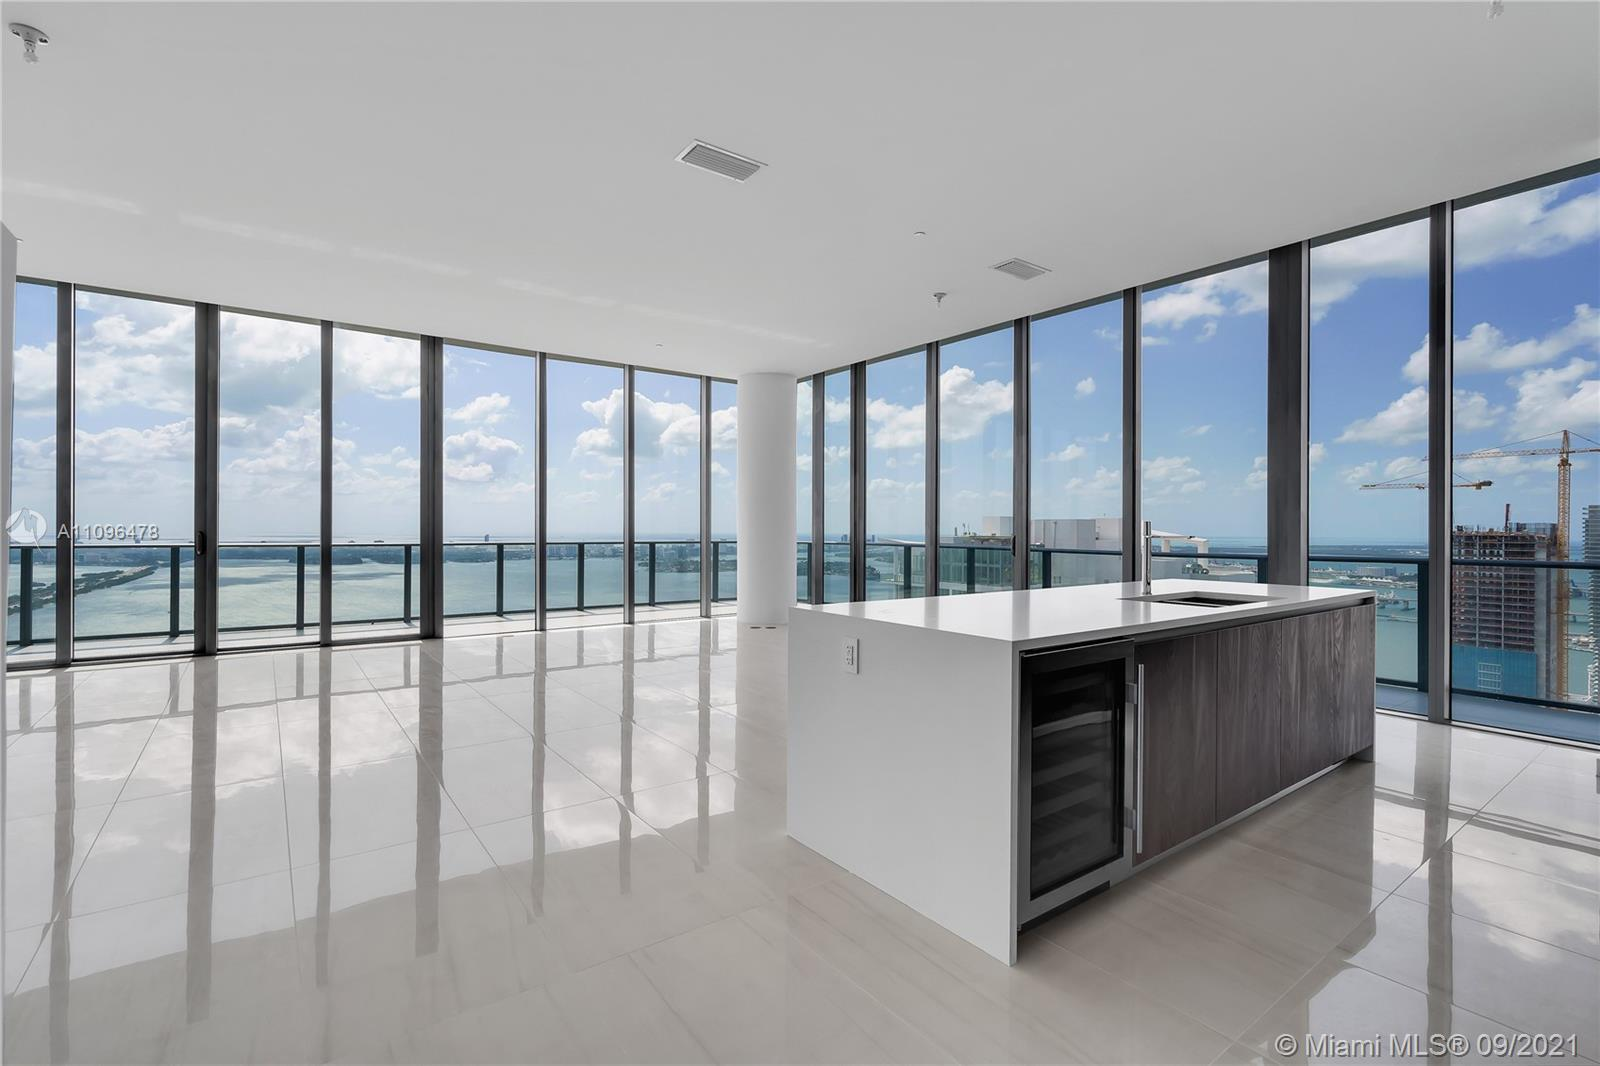 Double floor luxury Penthouse on the 54th floor at Gran Paraiso. This flow-through Penthouse feature